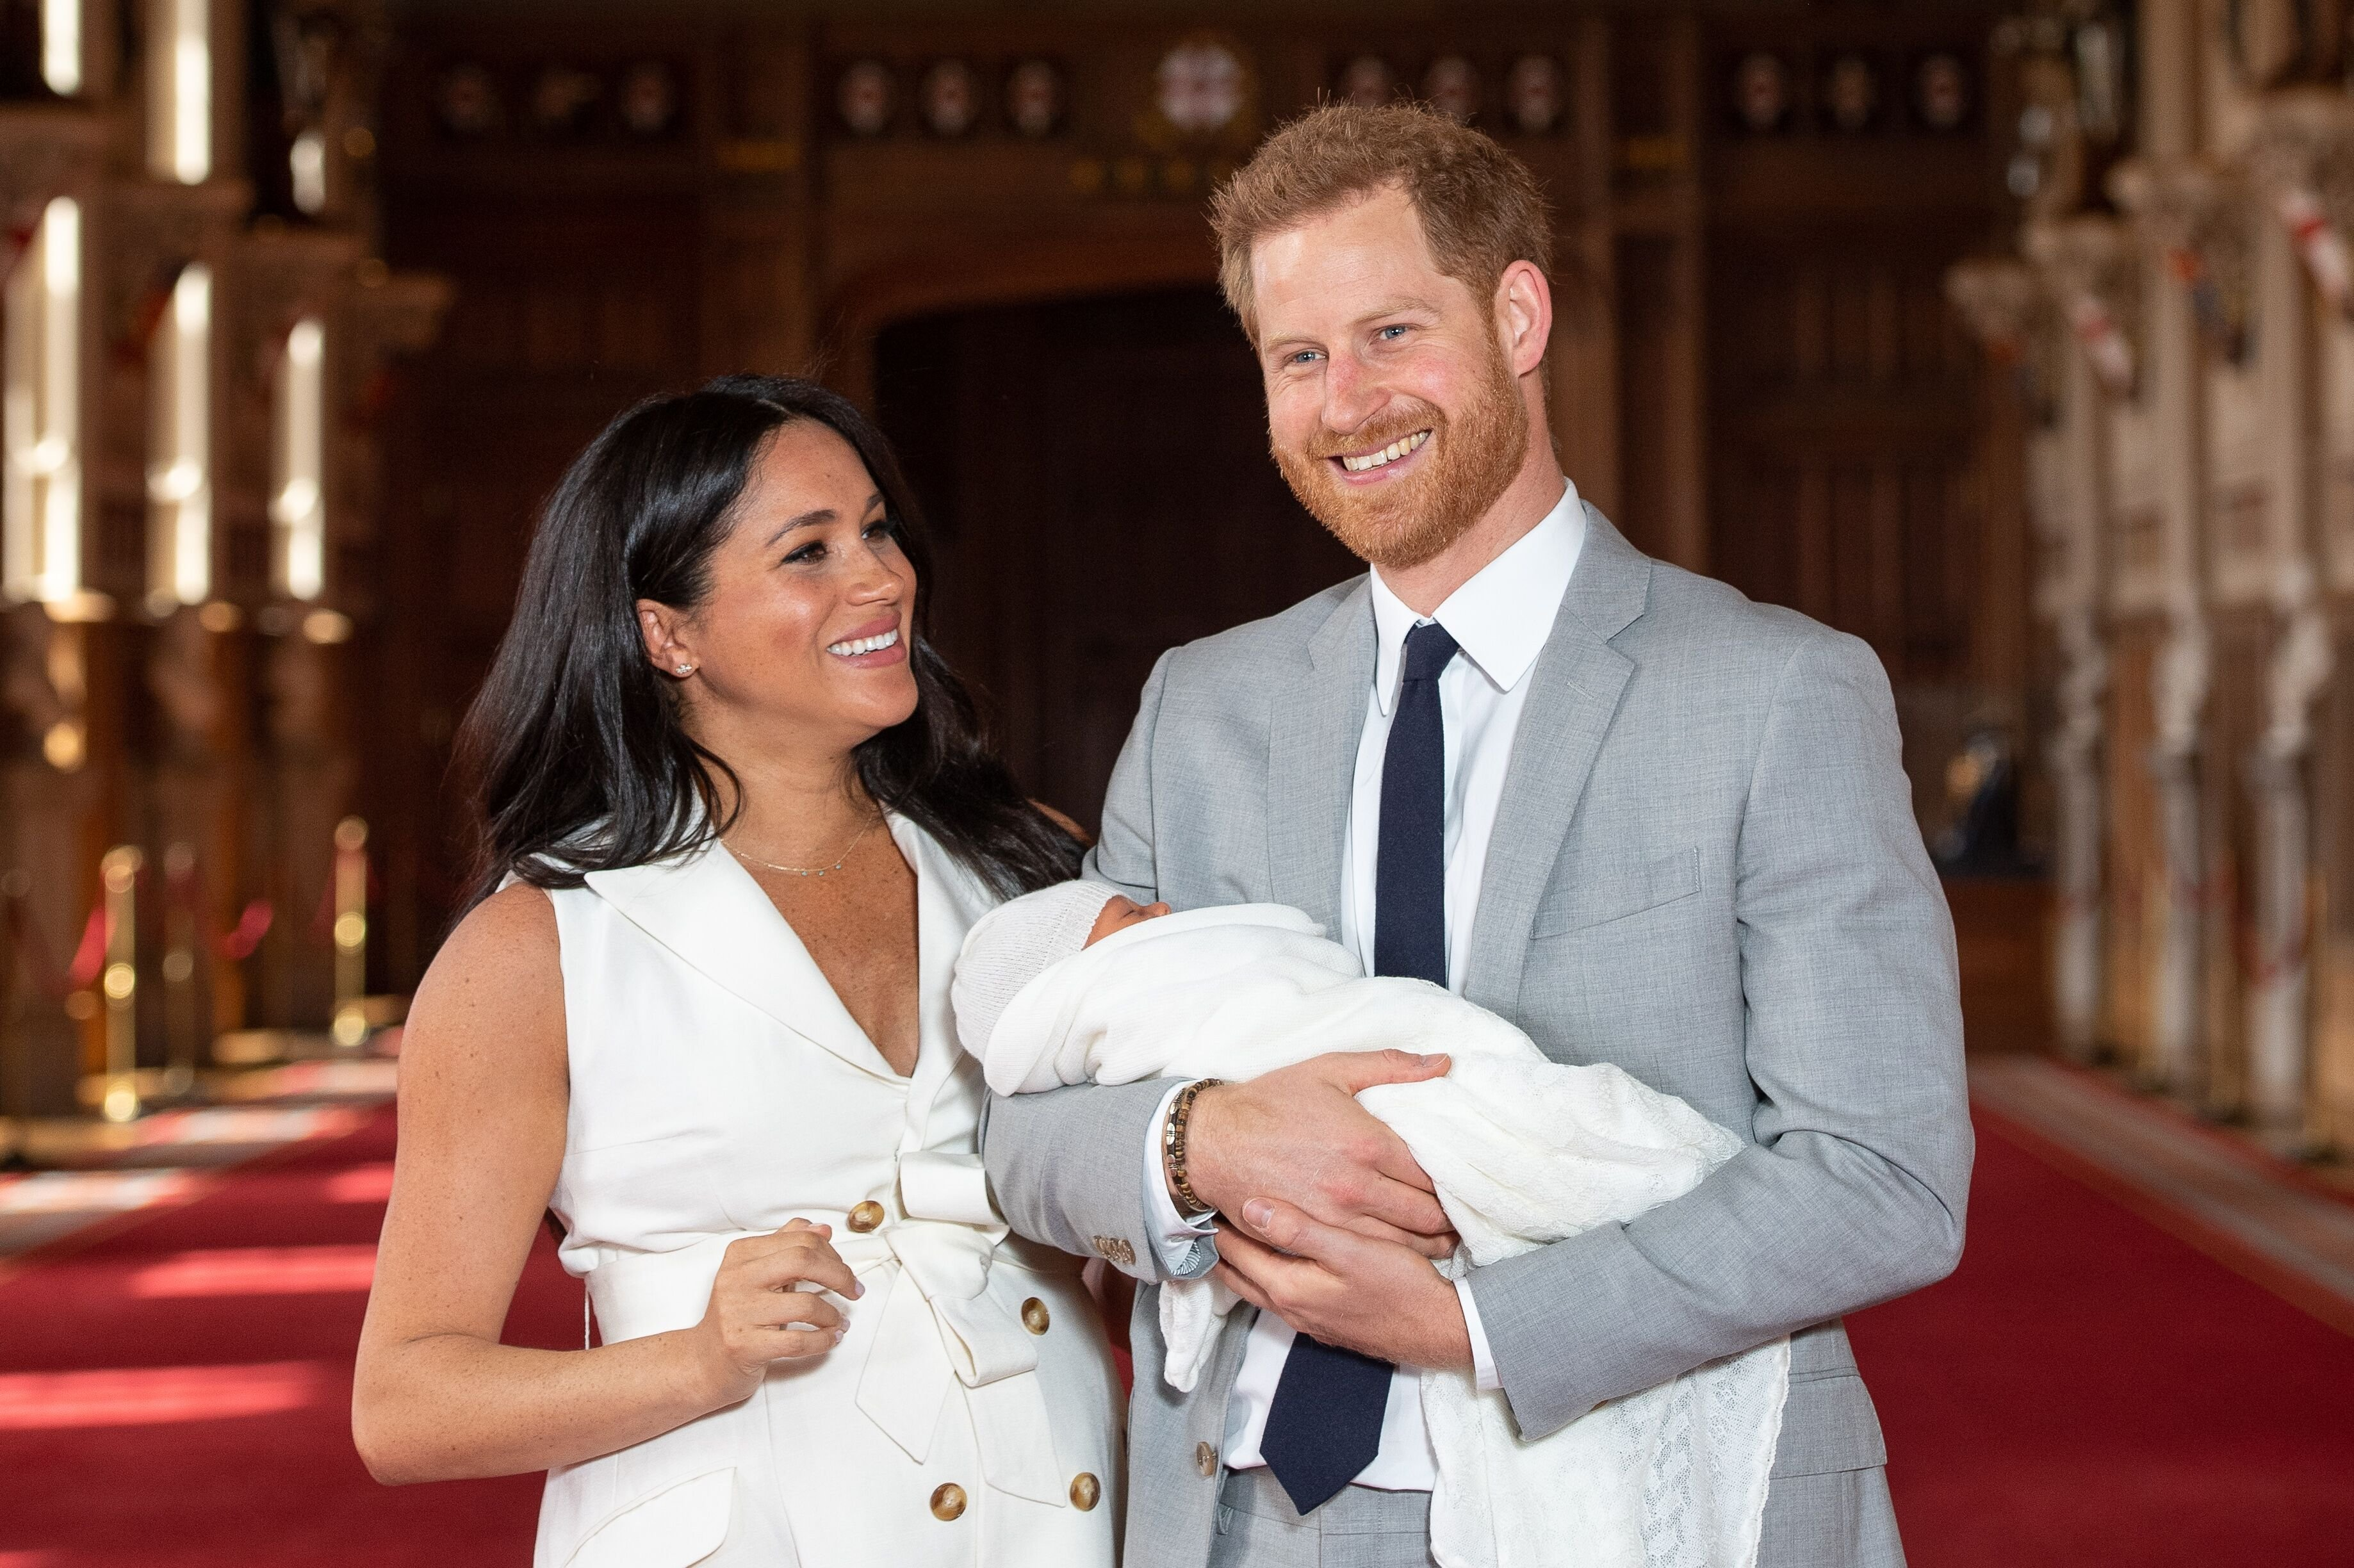 Prince Harry and Duchess Meghan pose with their newborn son Archie Harrison Mountbatten-Windsor during a photocall in St George's Hall at Windsor Castle on May 8, 2019 in Windsor, England. | Source: Getty Images